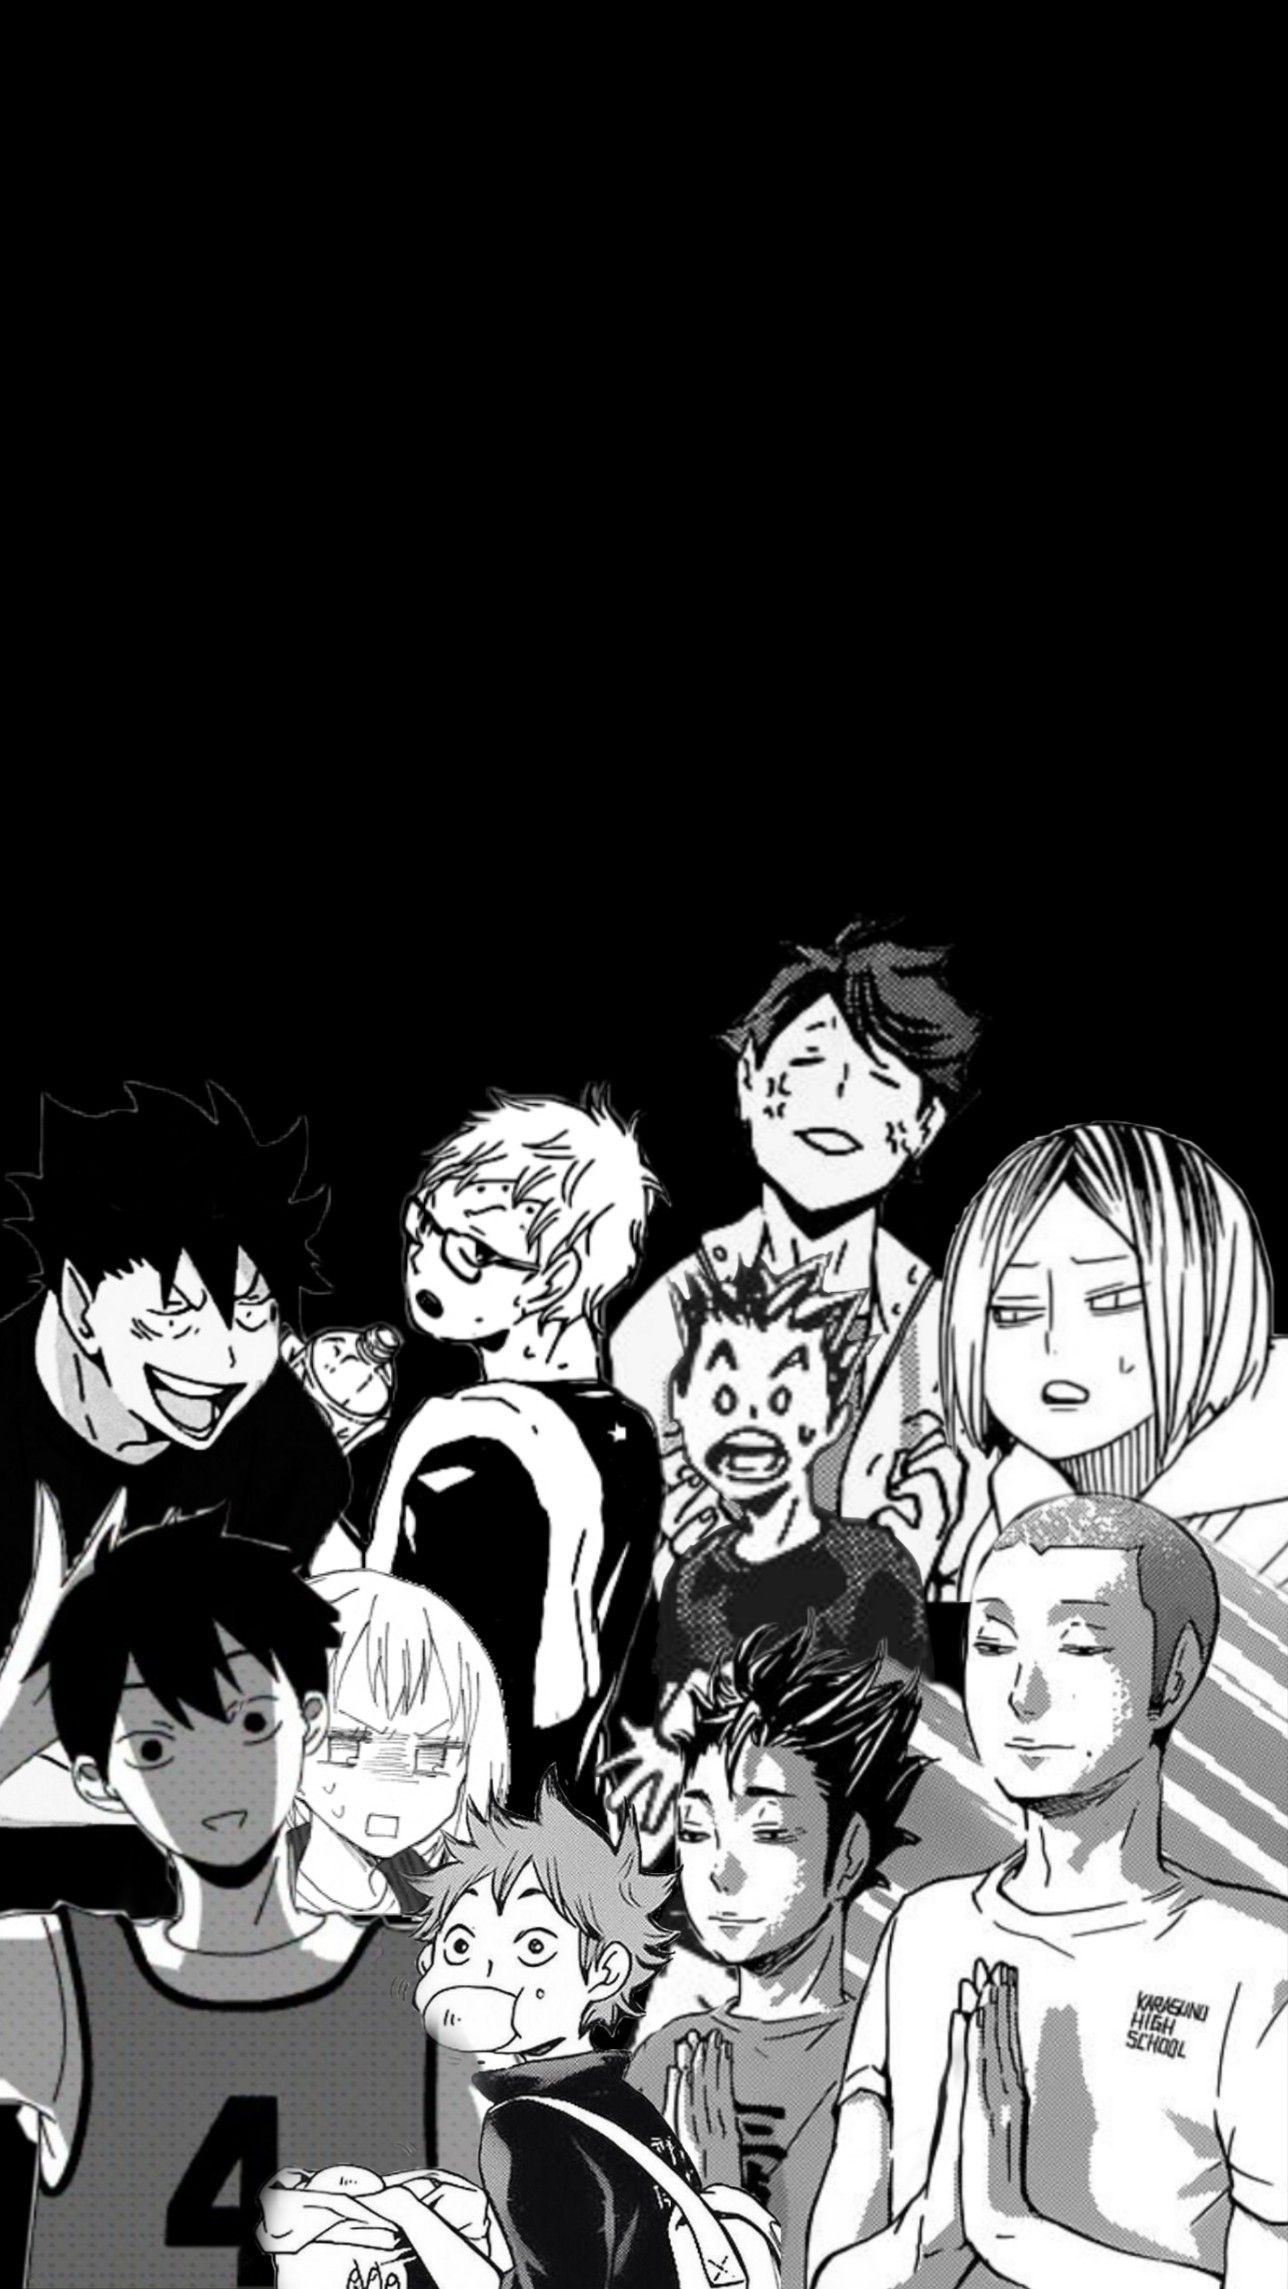 Haikyu In 2020 Aesthetic Anime Anime Wallpaper Iphone Black And White Wallpaper Iphone